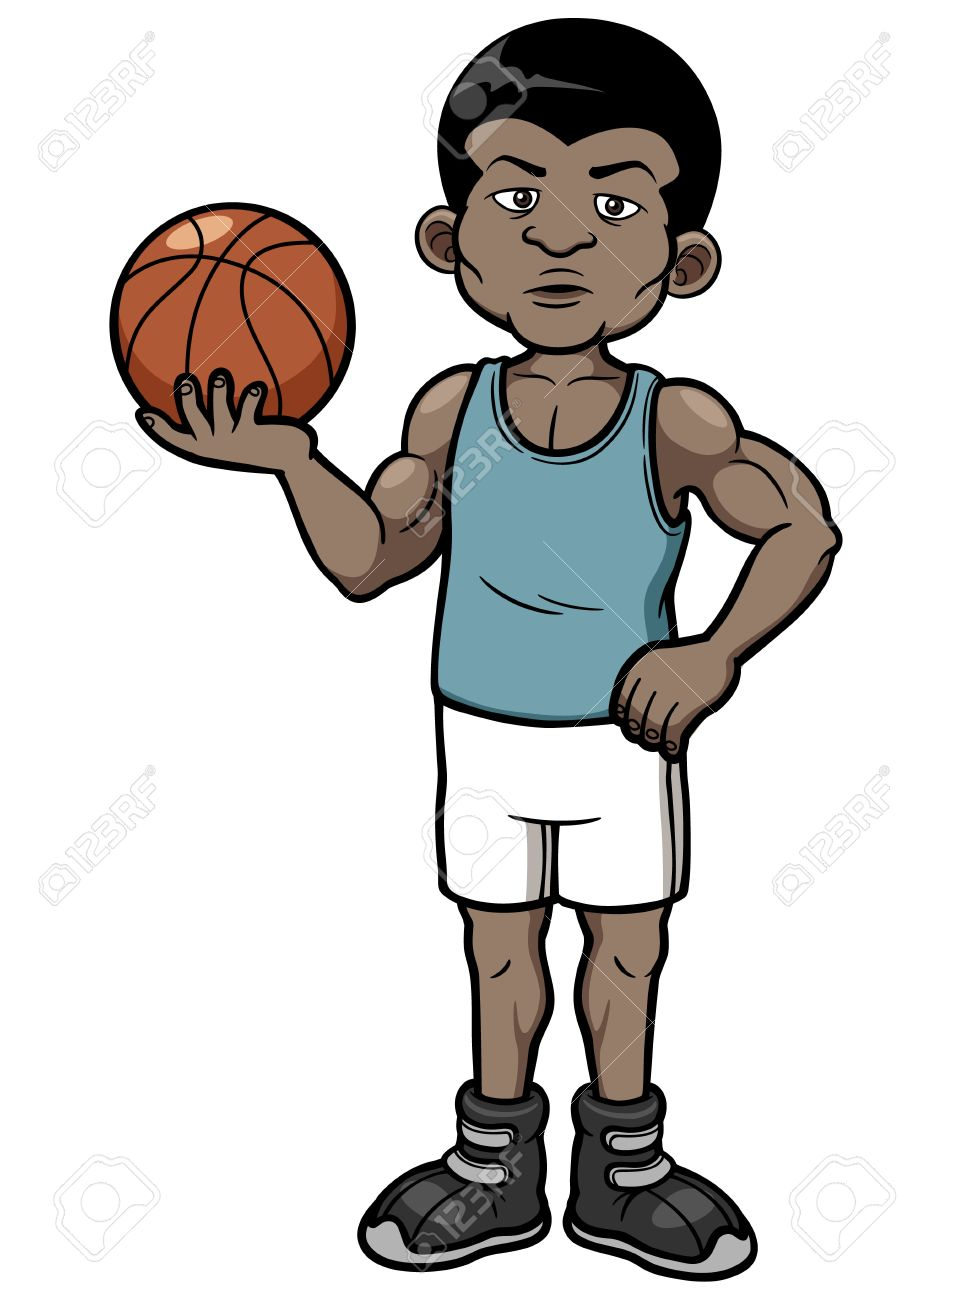 Vector Illustration Of Cartoon Basketball Player Royalty Free Cliparts Vectors And Stock Illustration Image 20480644 Choose from 210+ cartoon basketball graphic resources and download in the form of png, eps, ai or psd. vector illustration of cartoon basketball player